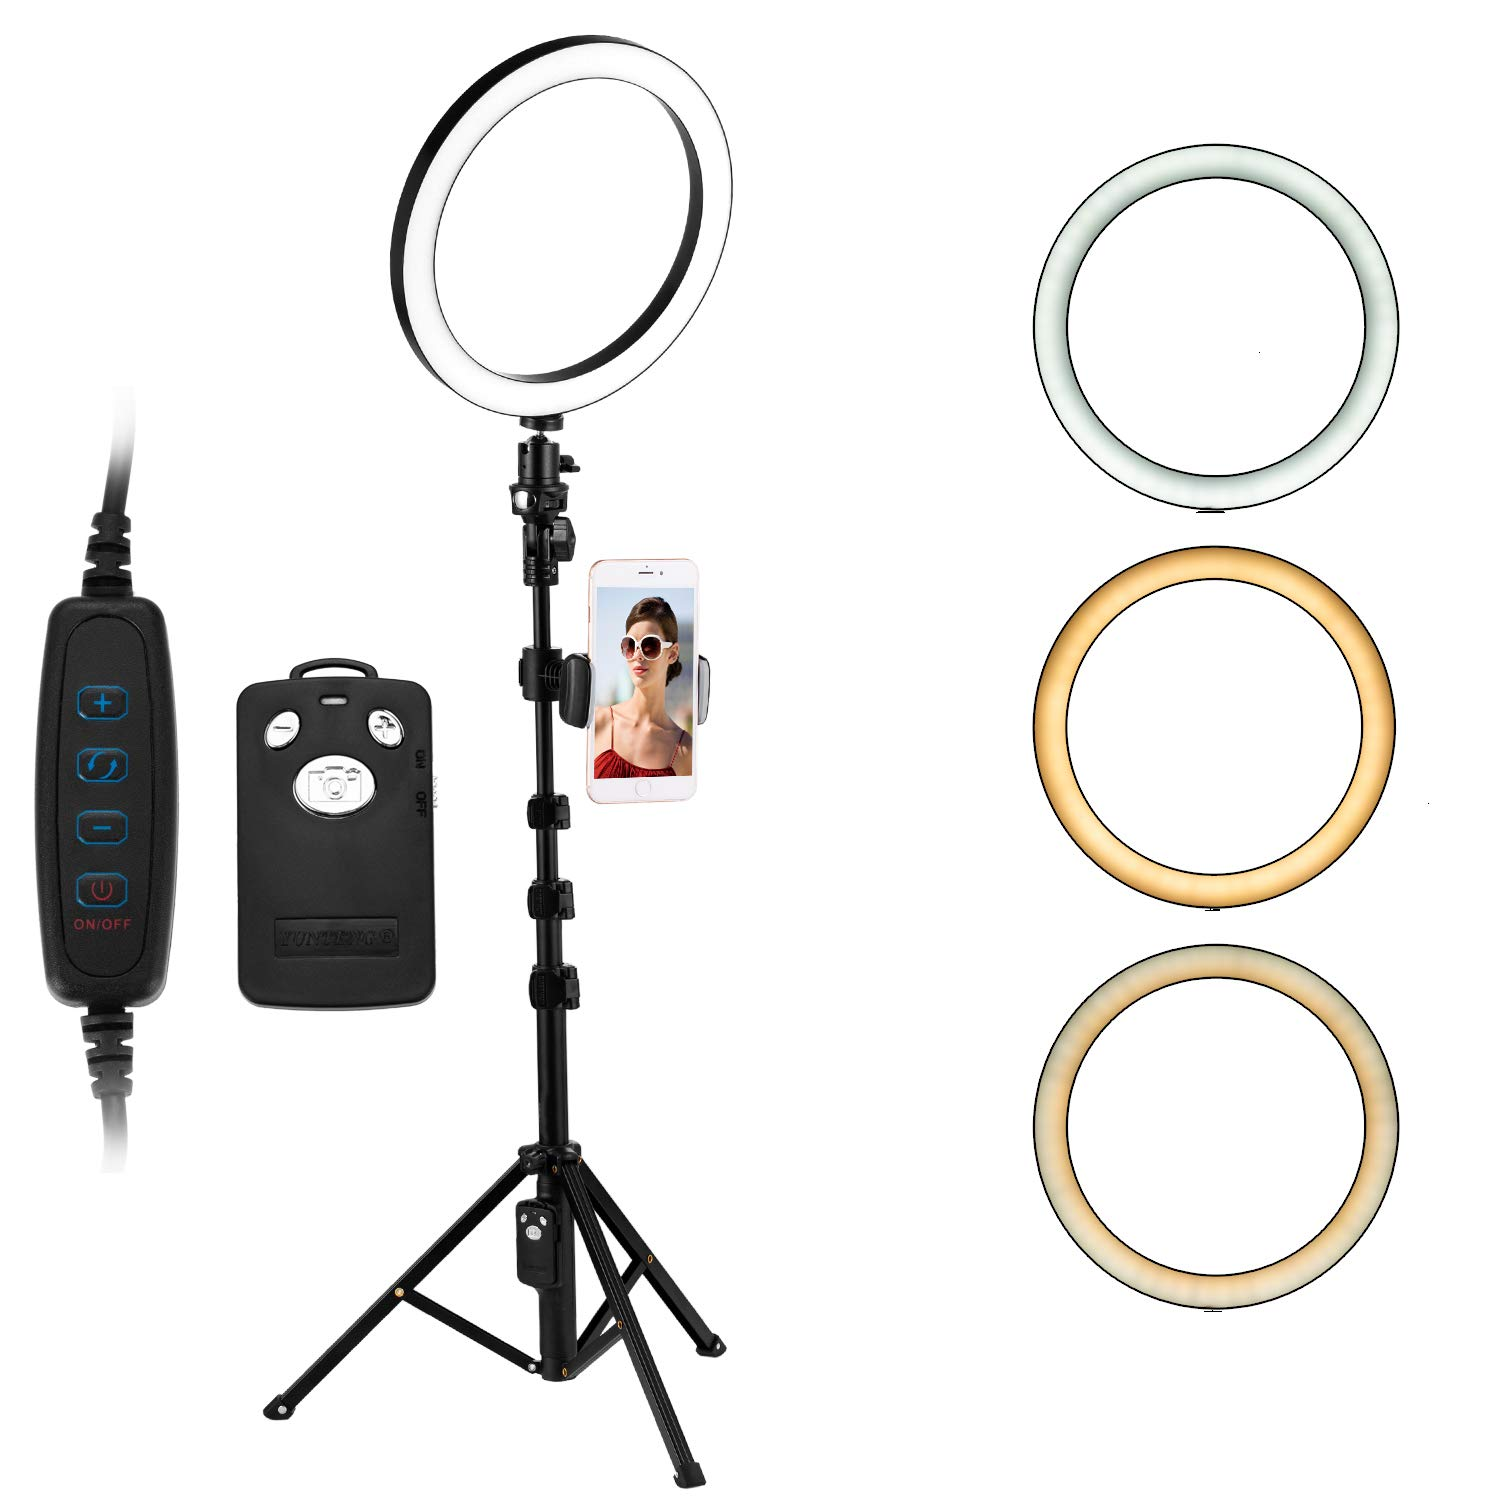 Deeteck 10 Inch Selfie Ring Light with Adjustable Tripod Stand,Dimmable Beauty Light with Phone Holder,LED Camera 360 Degree Ring Lights Kit Photography Lighting,for Makeup,Youtube Video,Live Stream by Deeteck